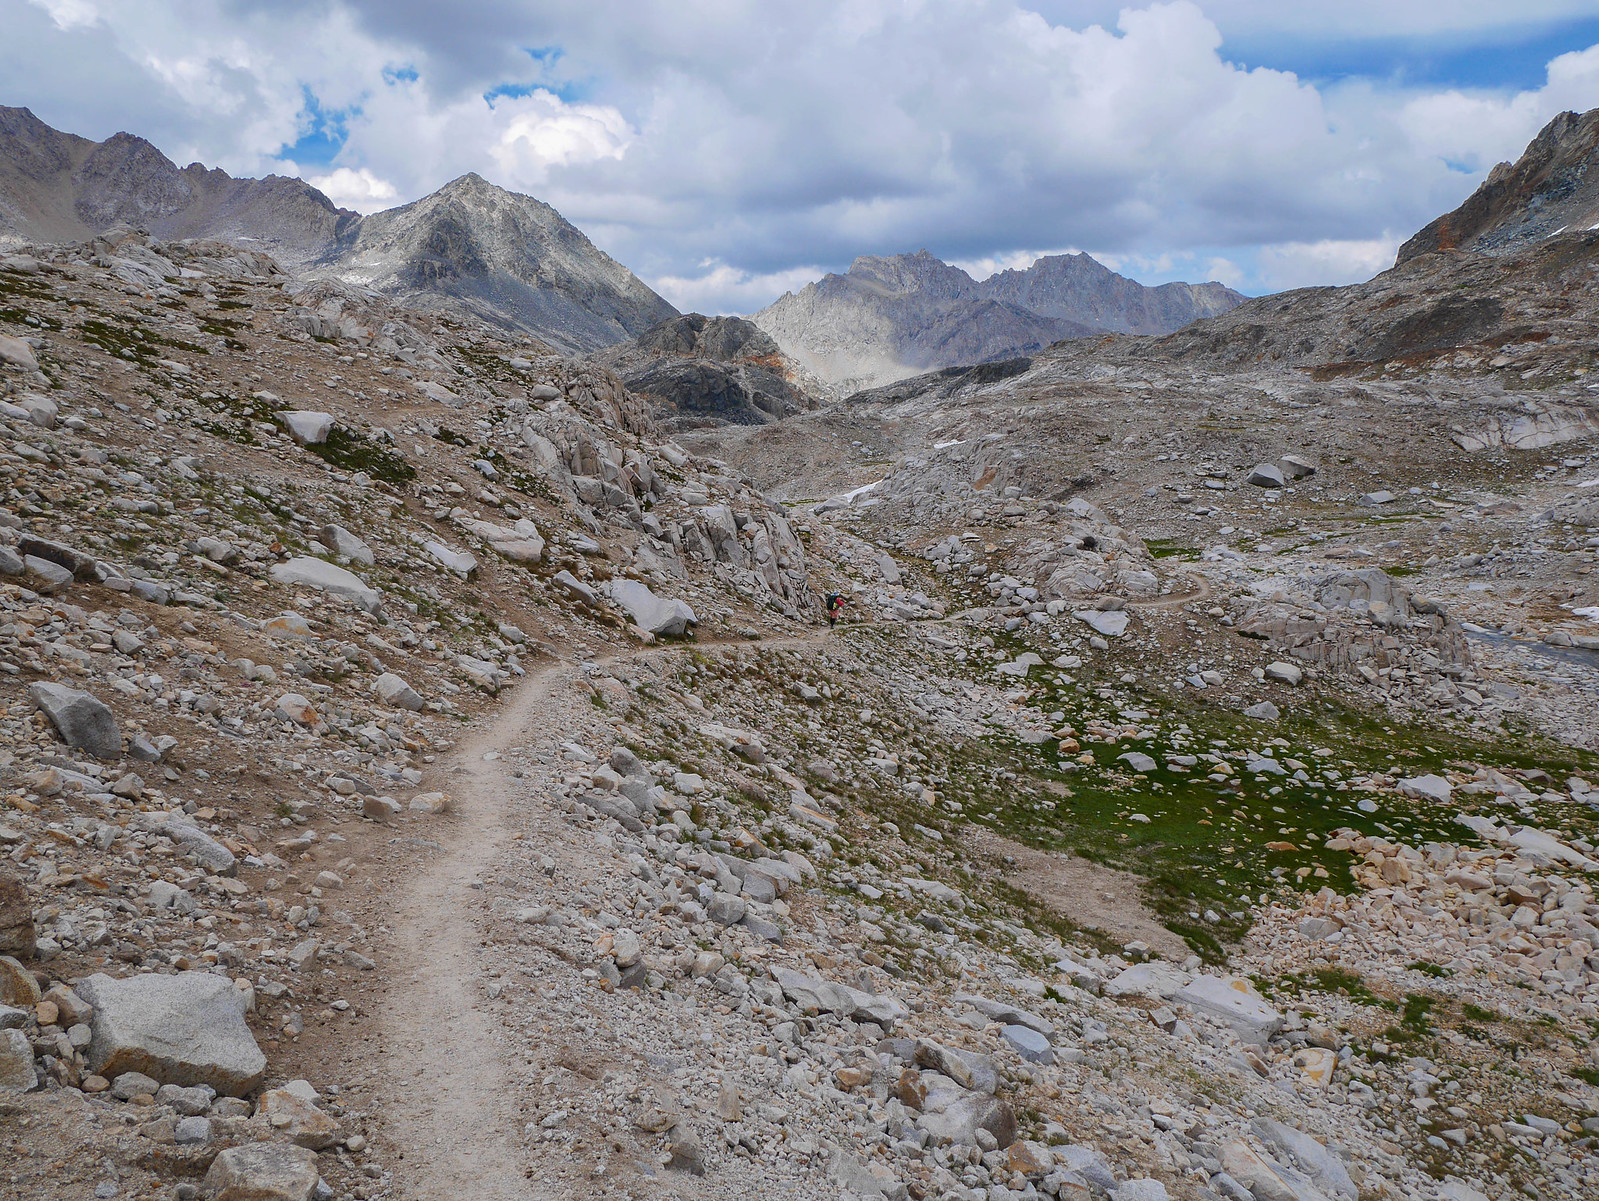 Descending from Muir Pass